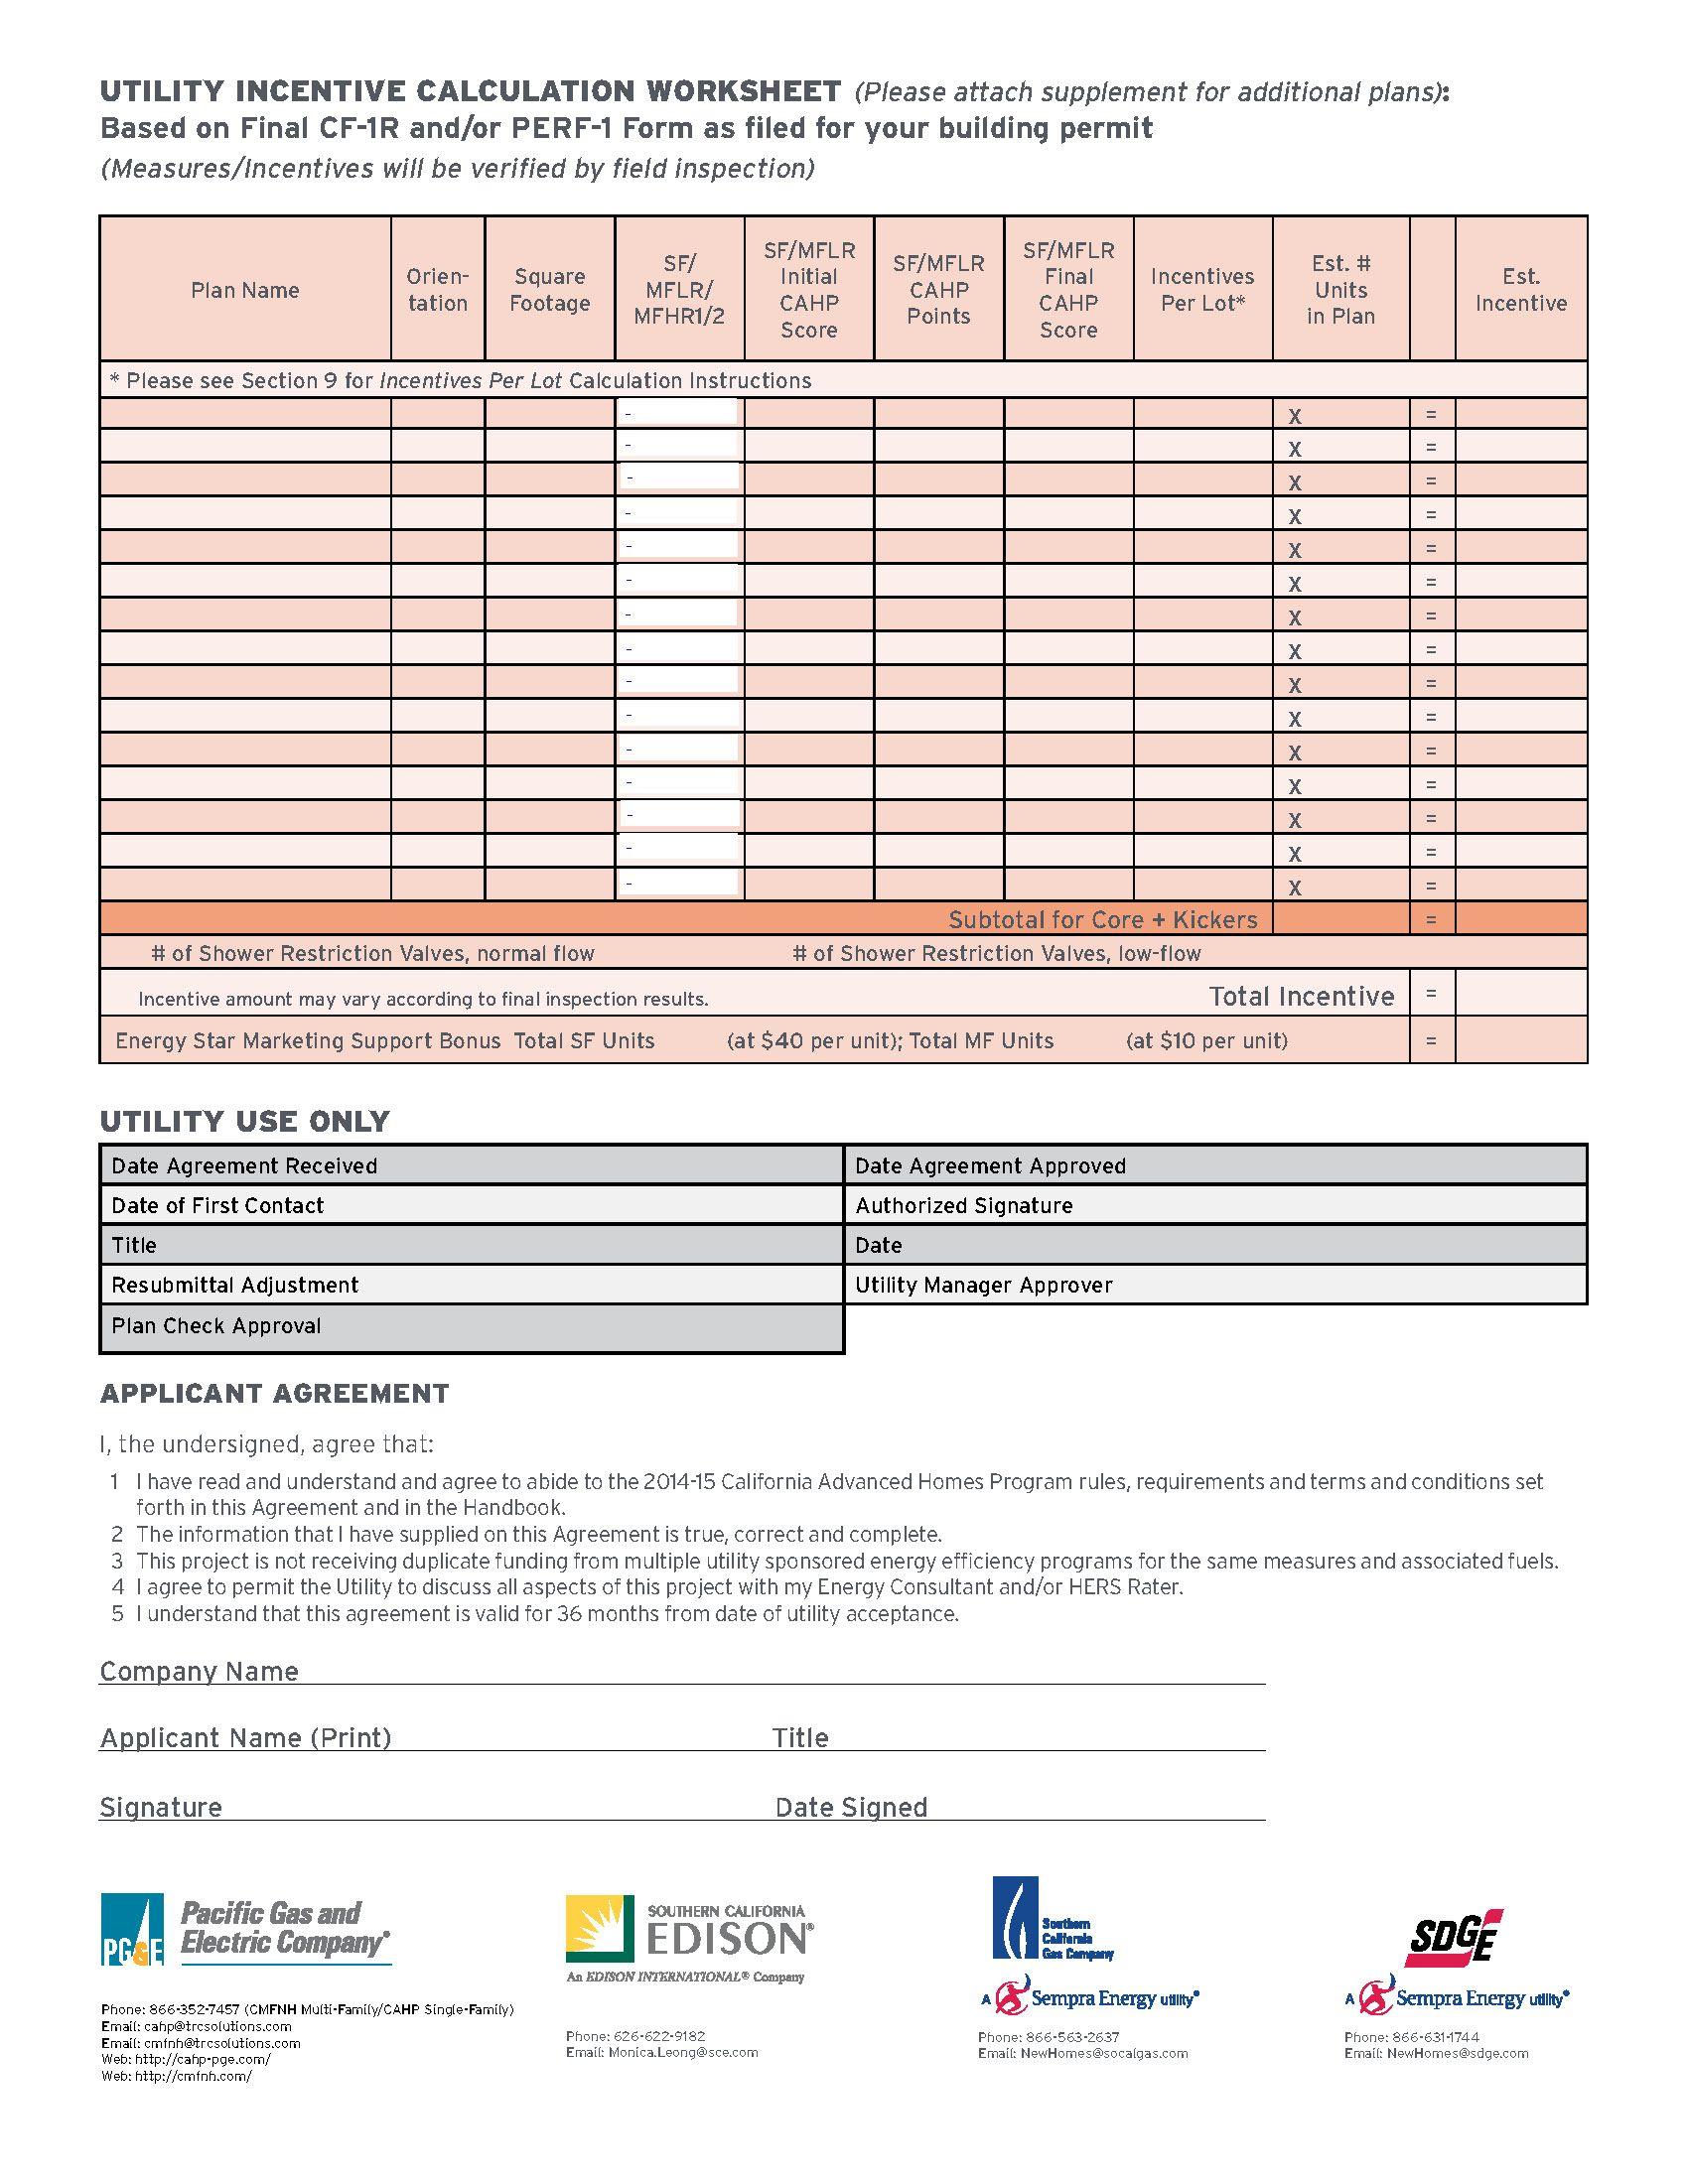 Utility Incentive Calculation Worksheet From The 15